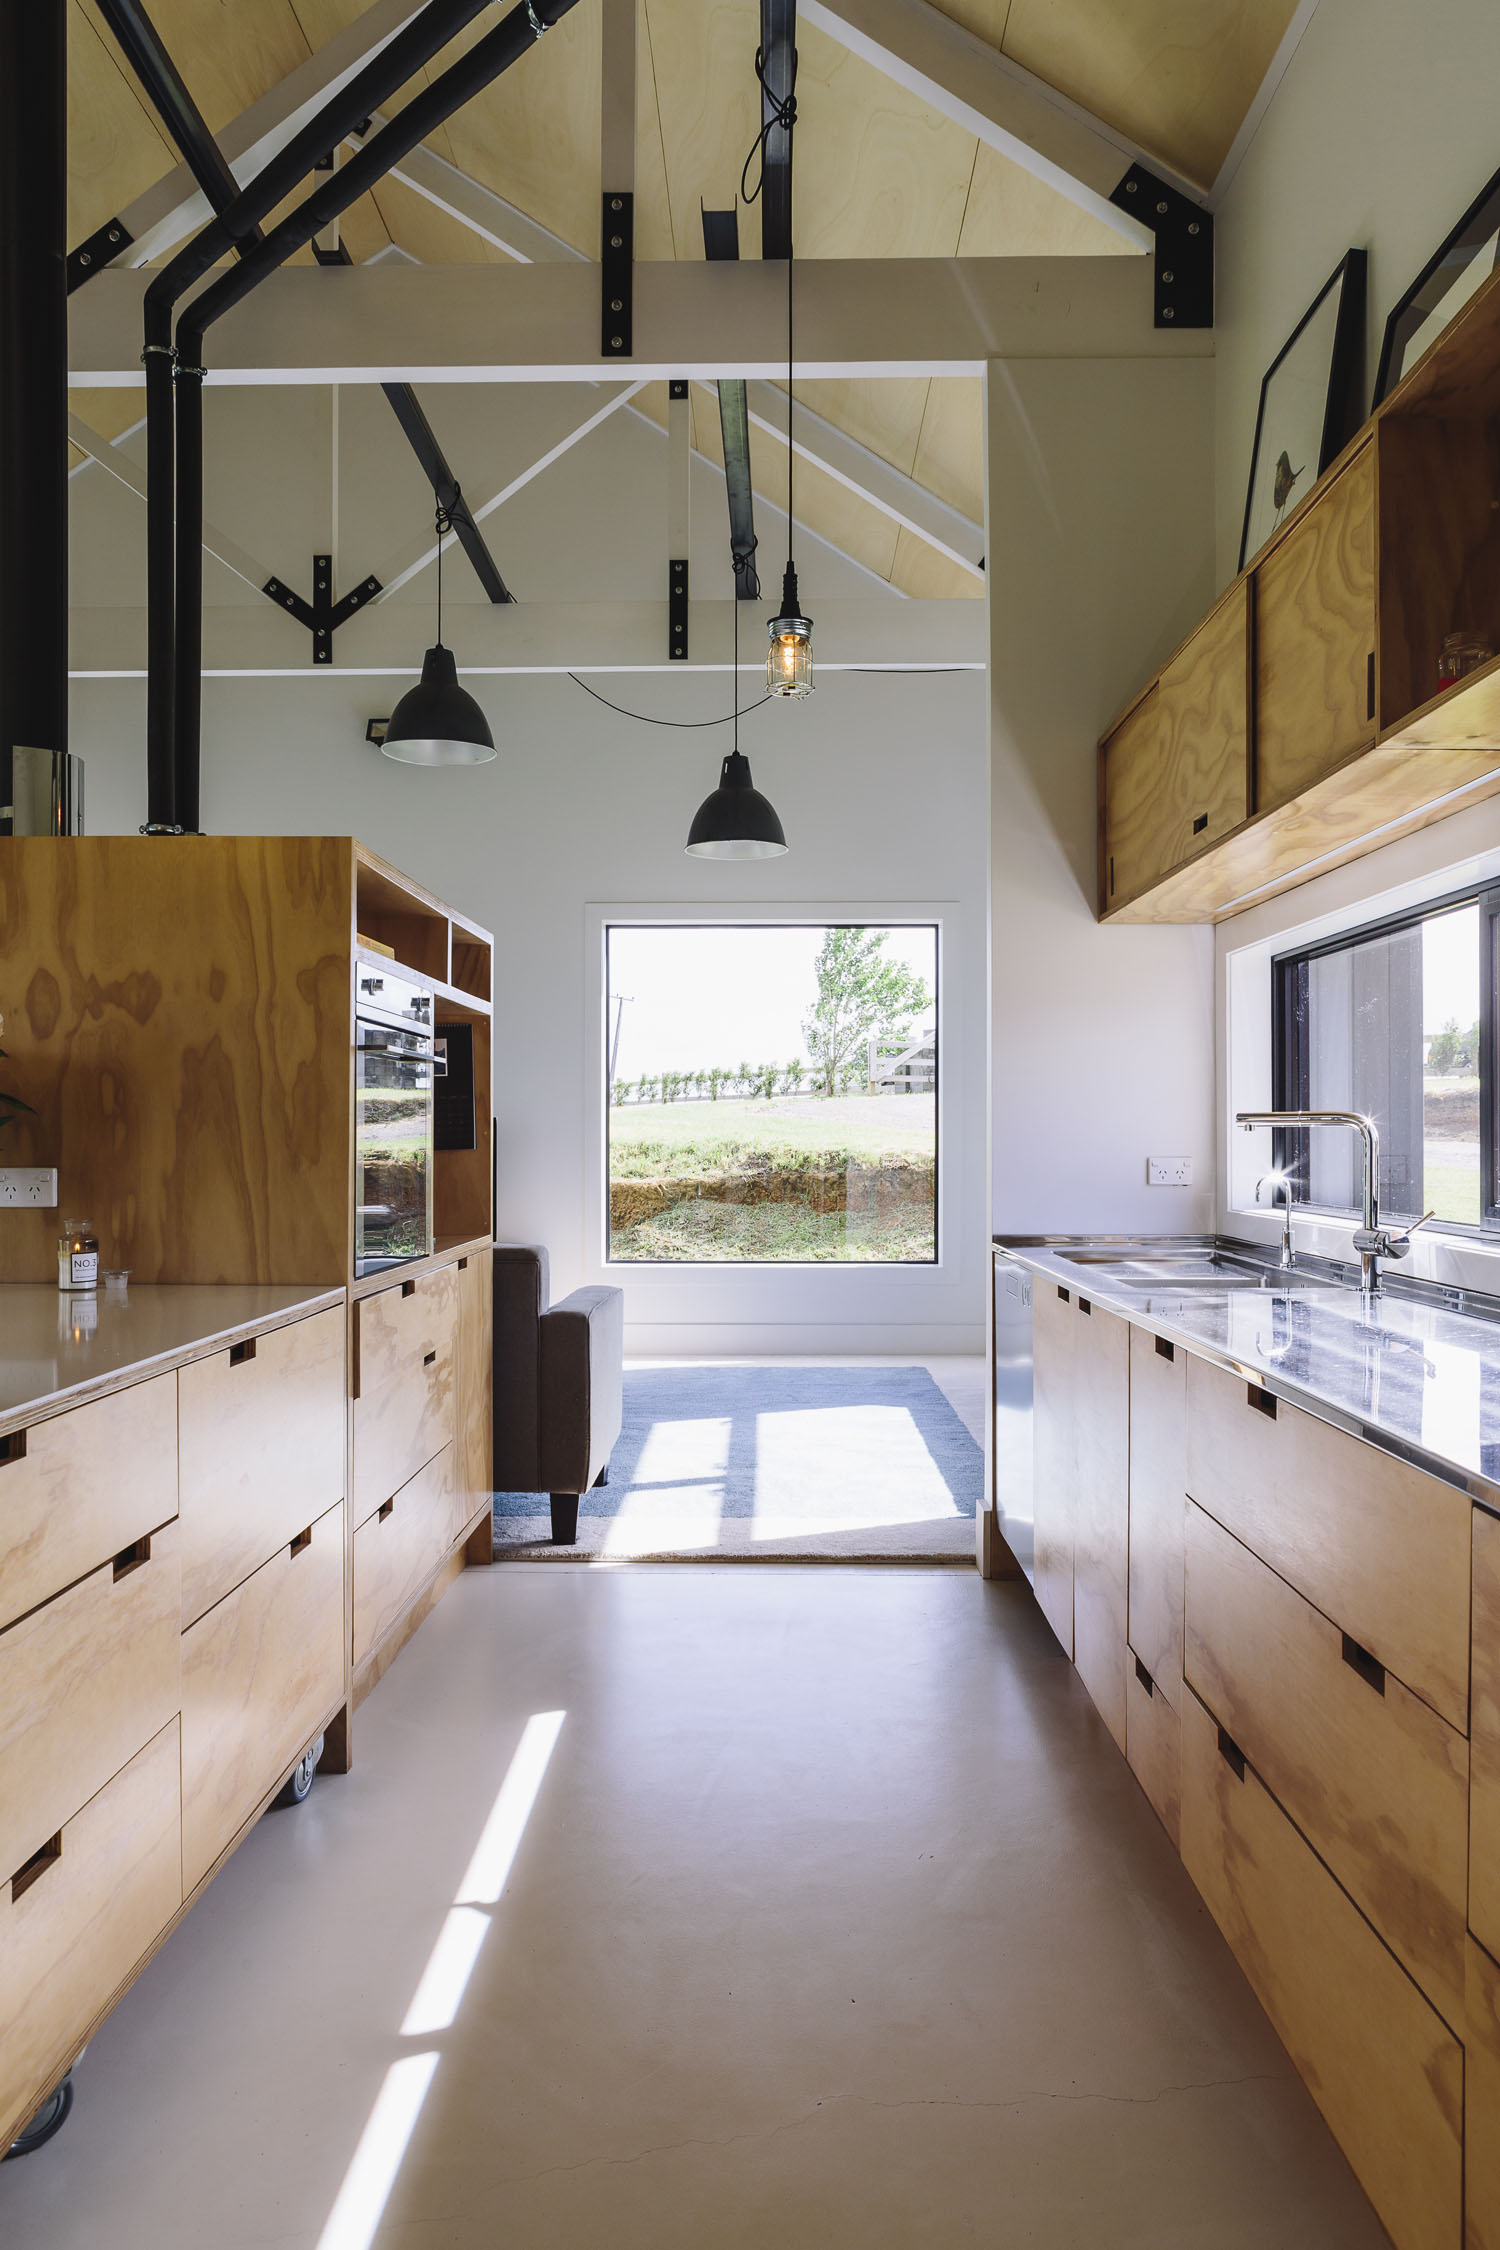 Red Architecture Plywood Barn Kitchen